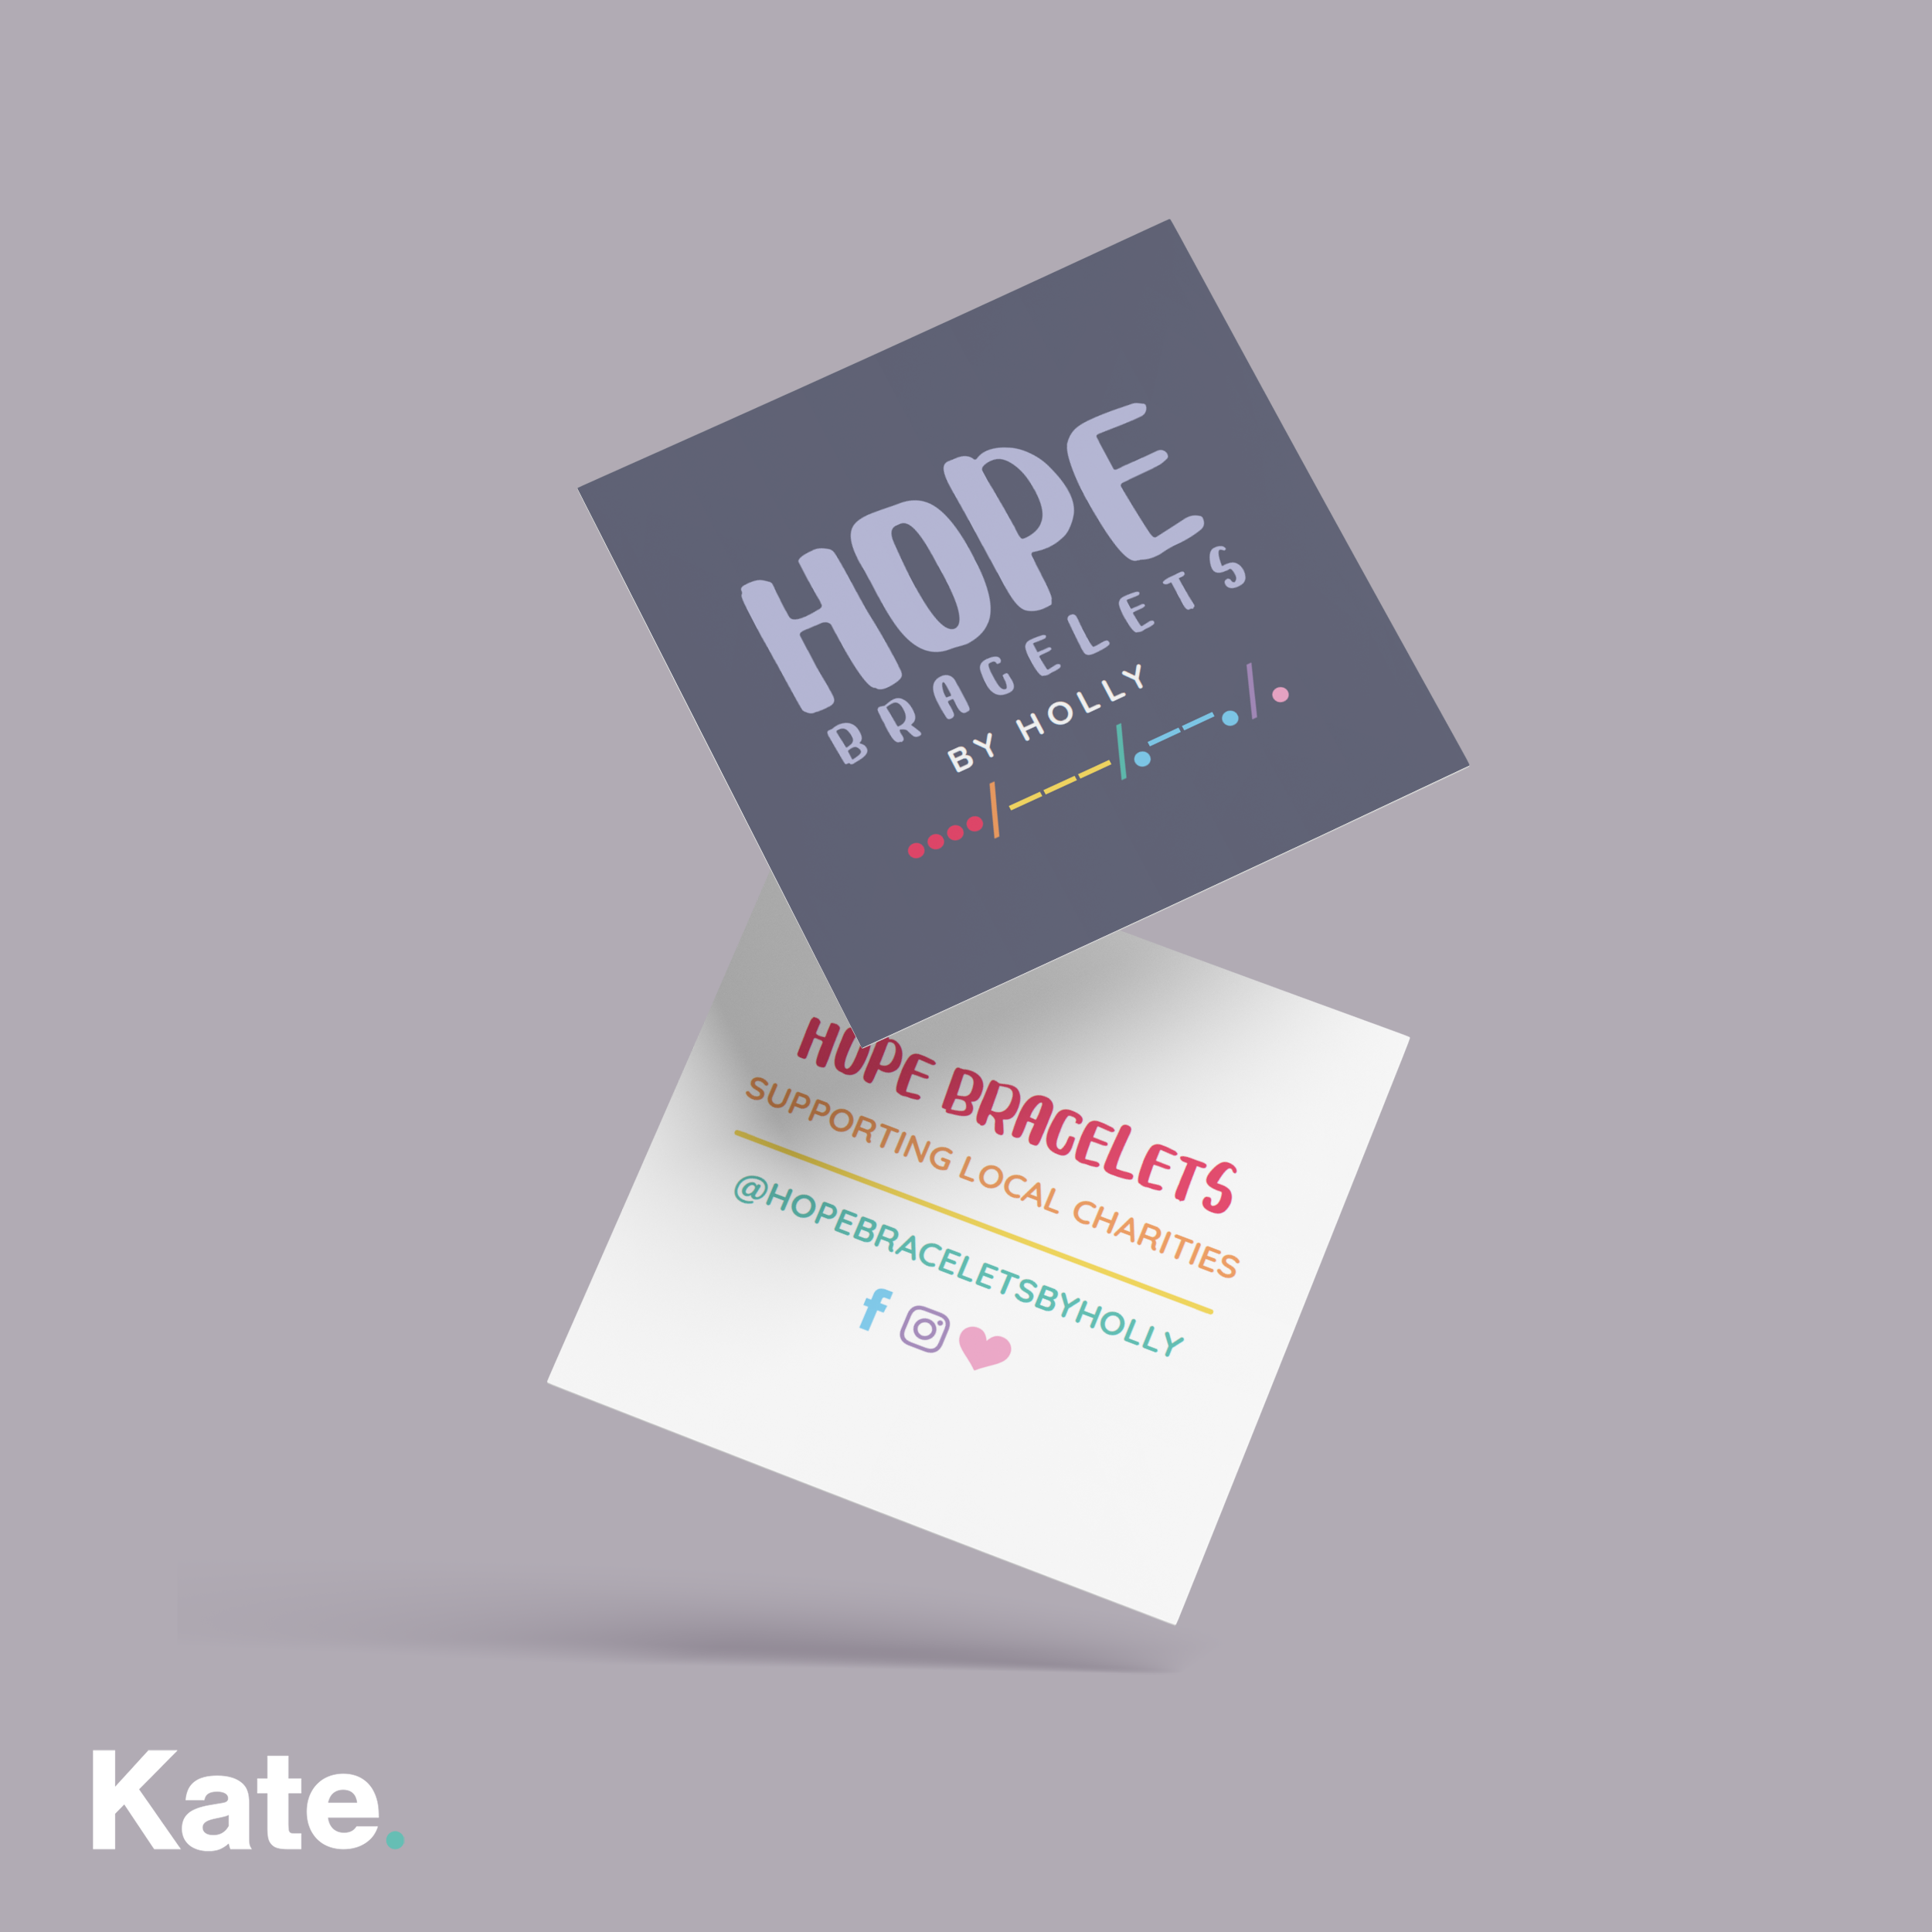 Hope bracelets logo and business cards